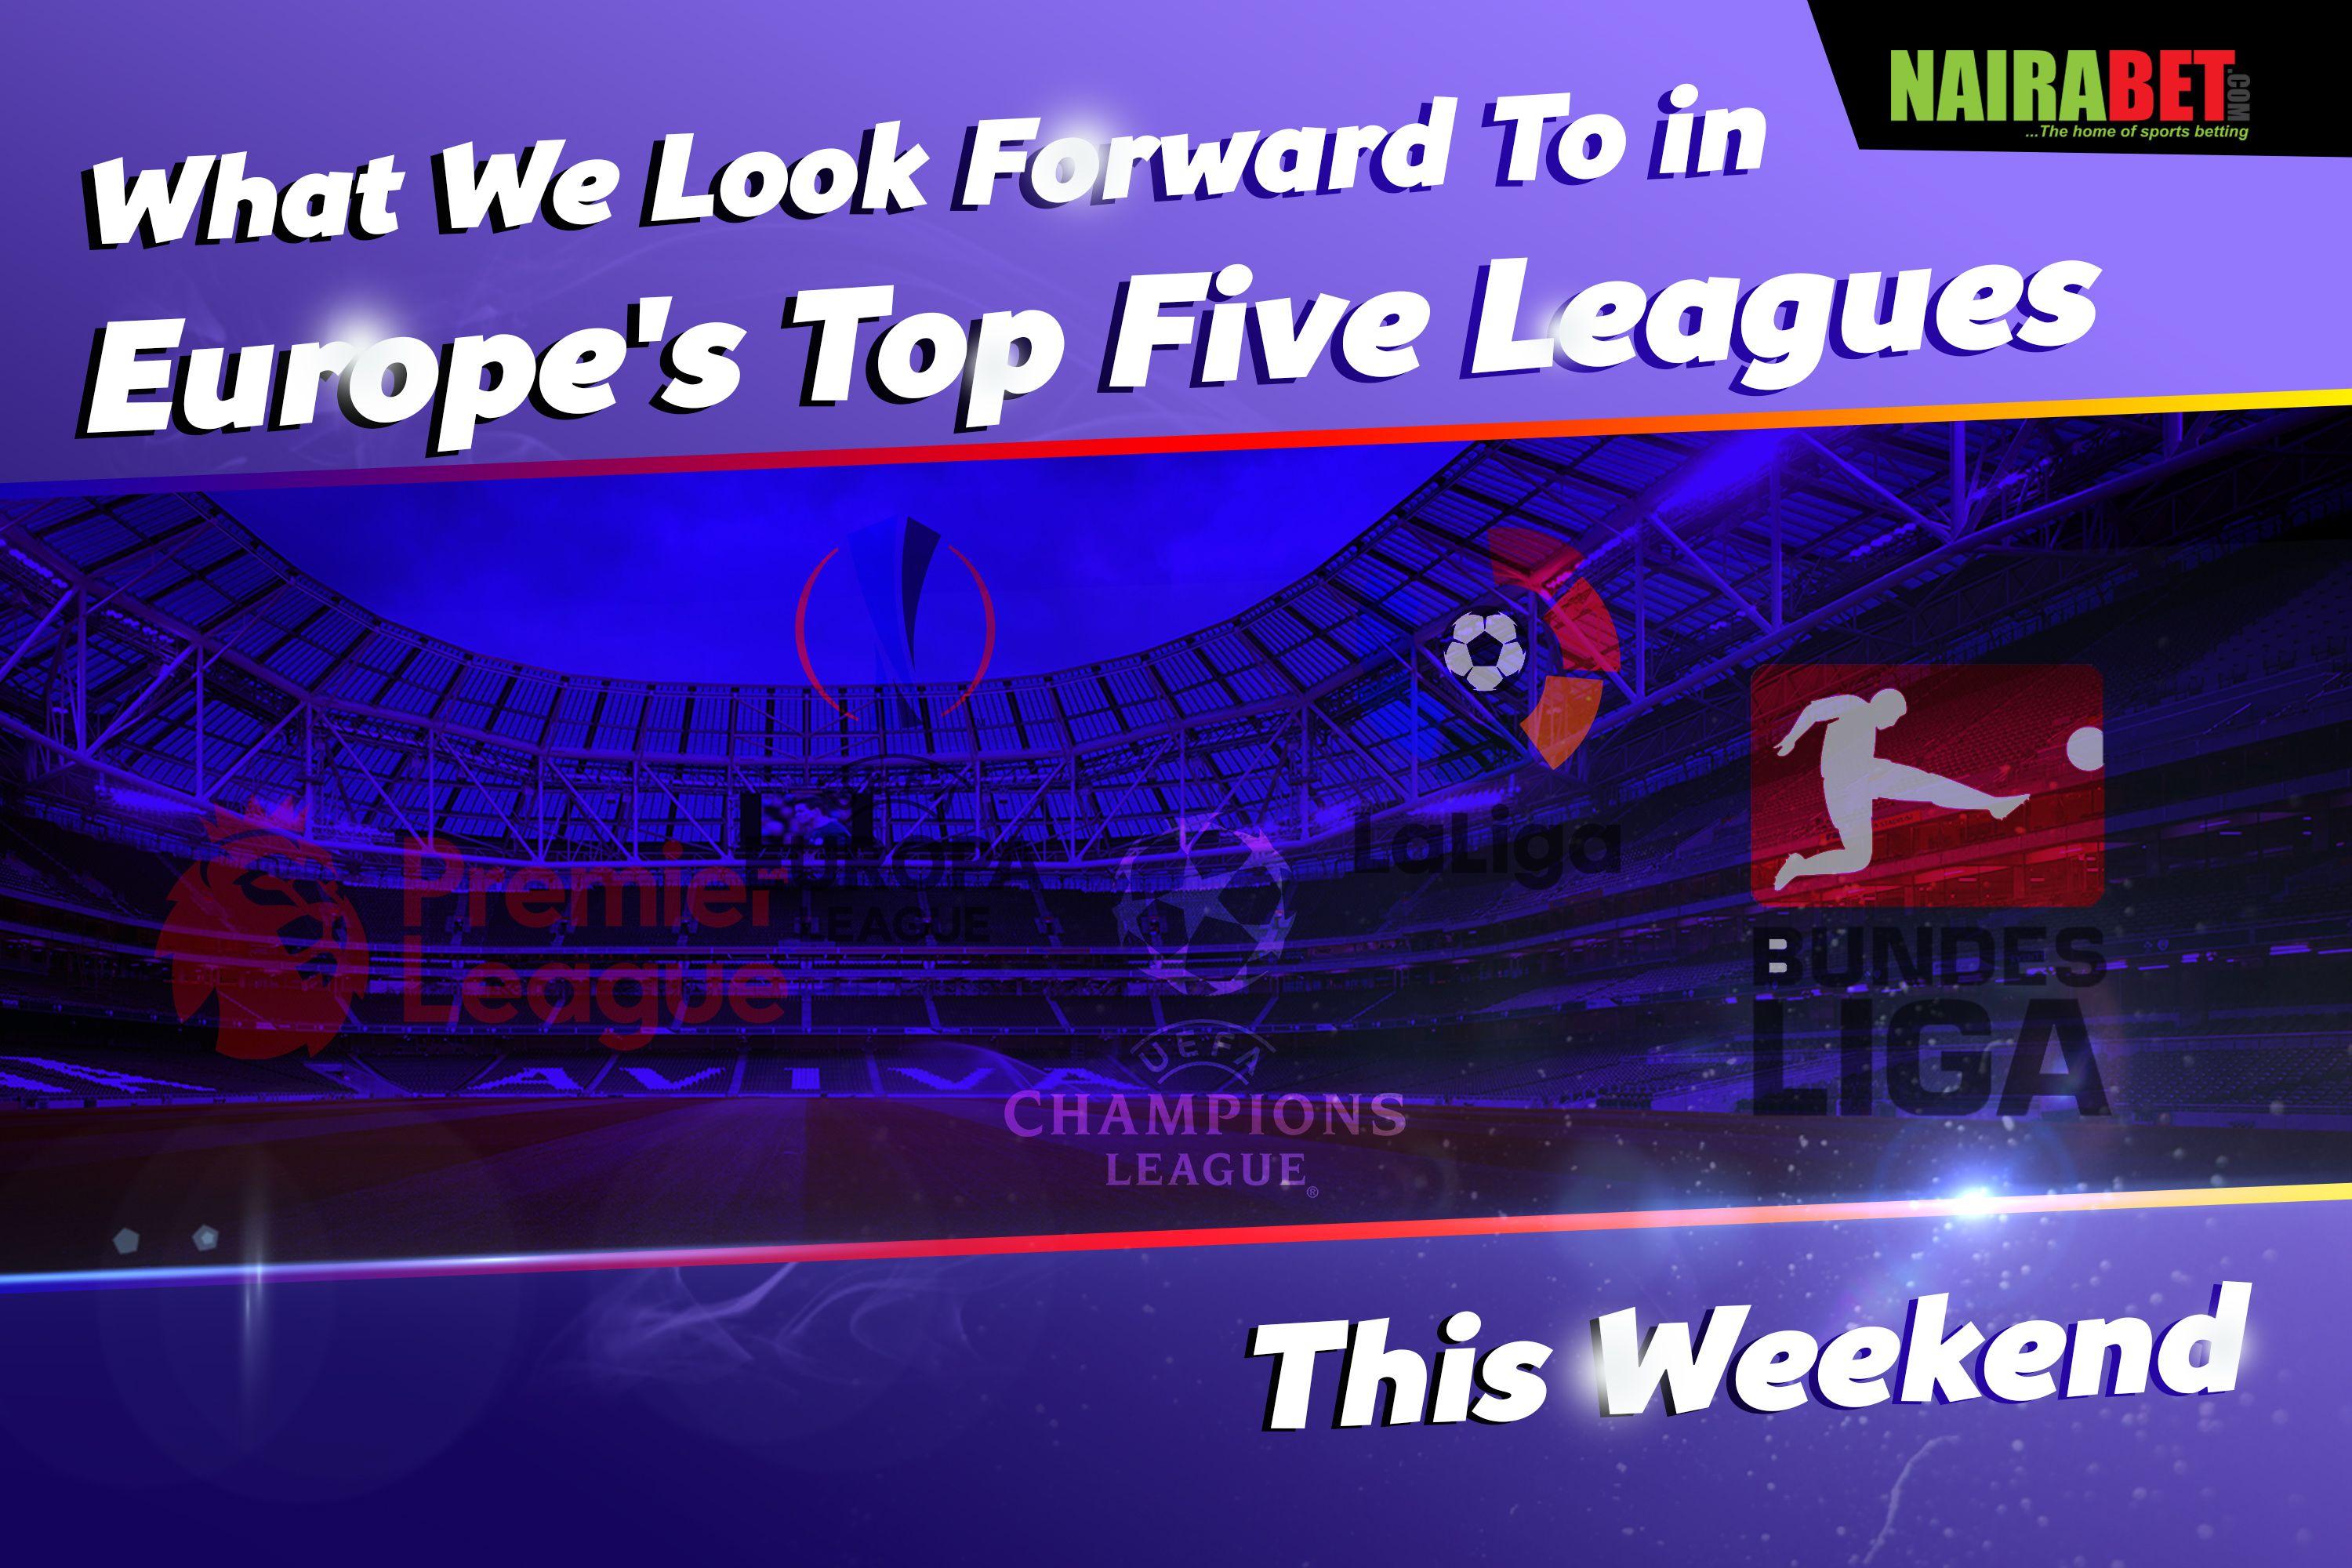 europe's top 5 leagues expectations